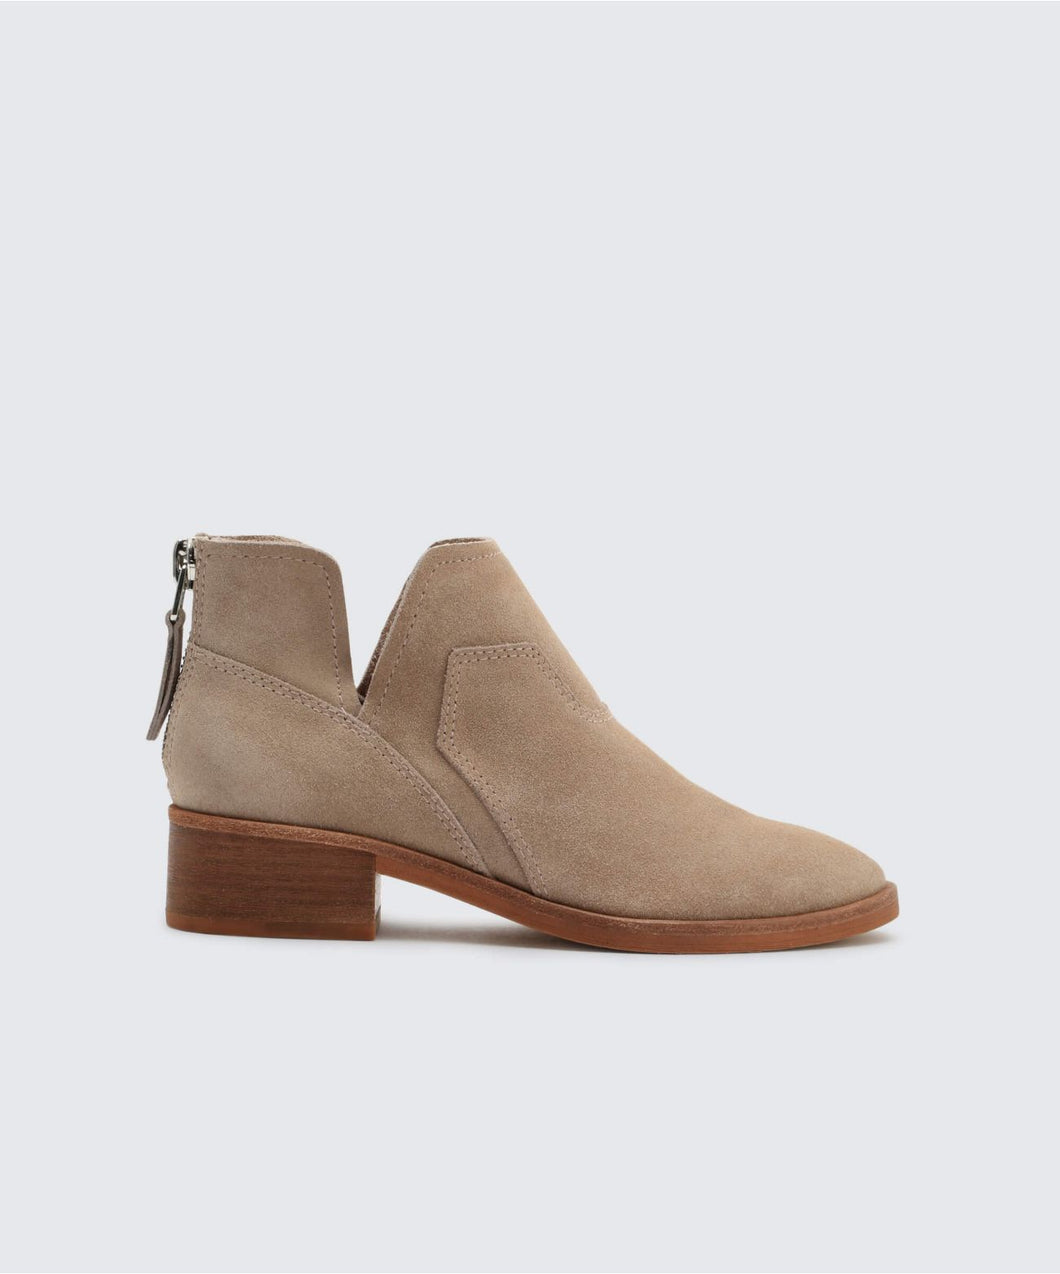 TITUS BOOTIES IN TAUPE -   Dolce Vita